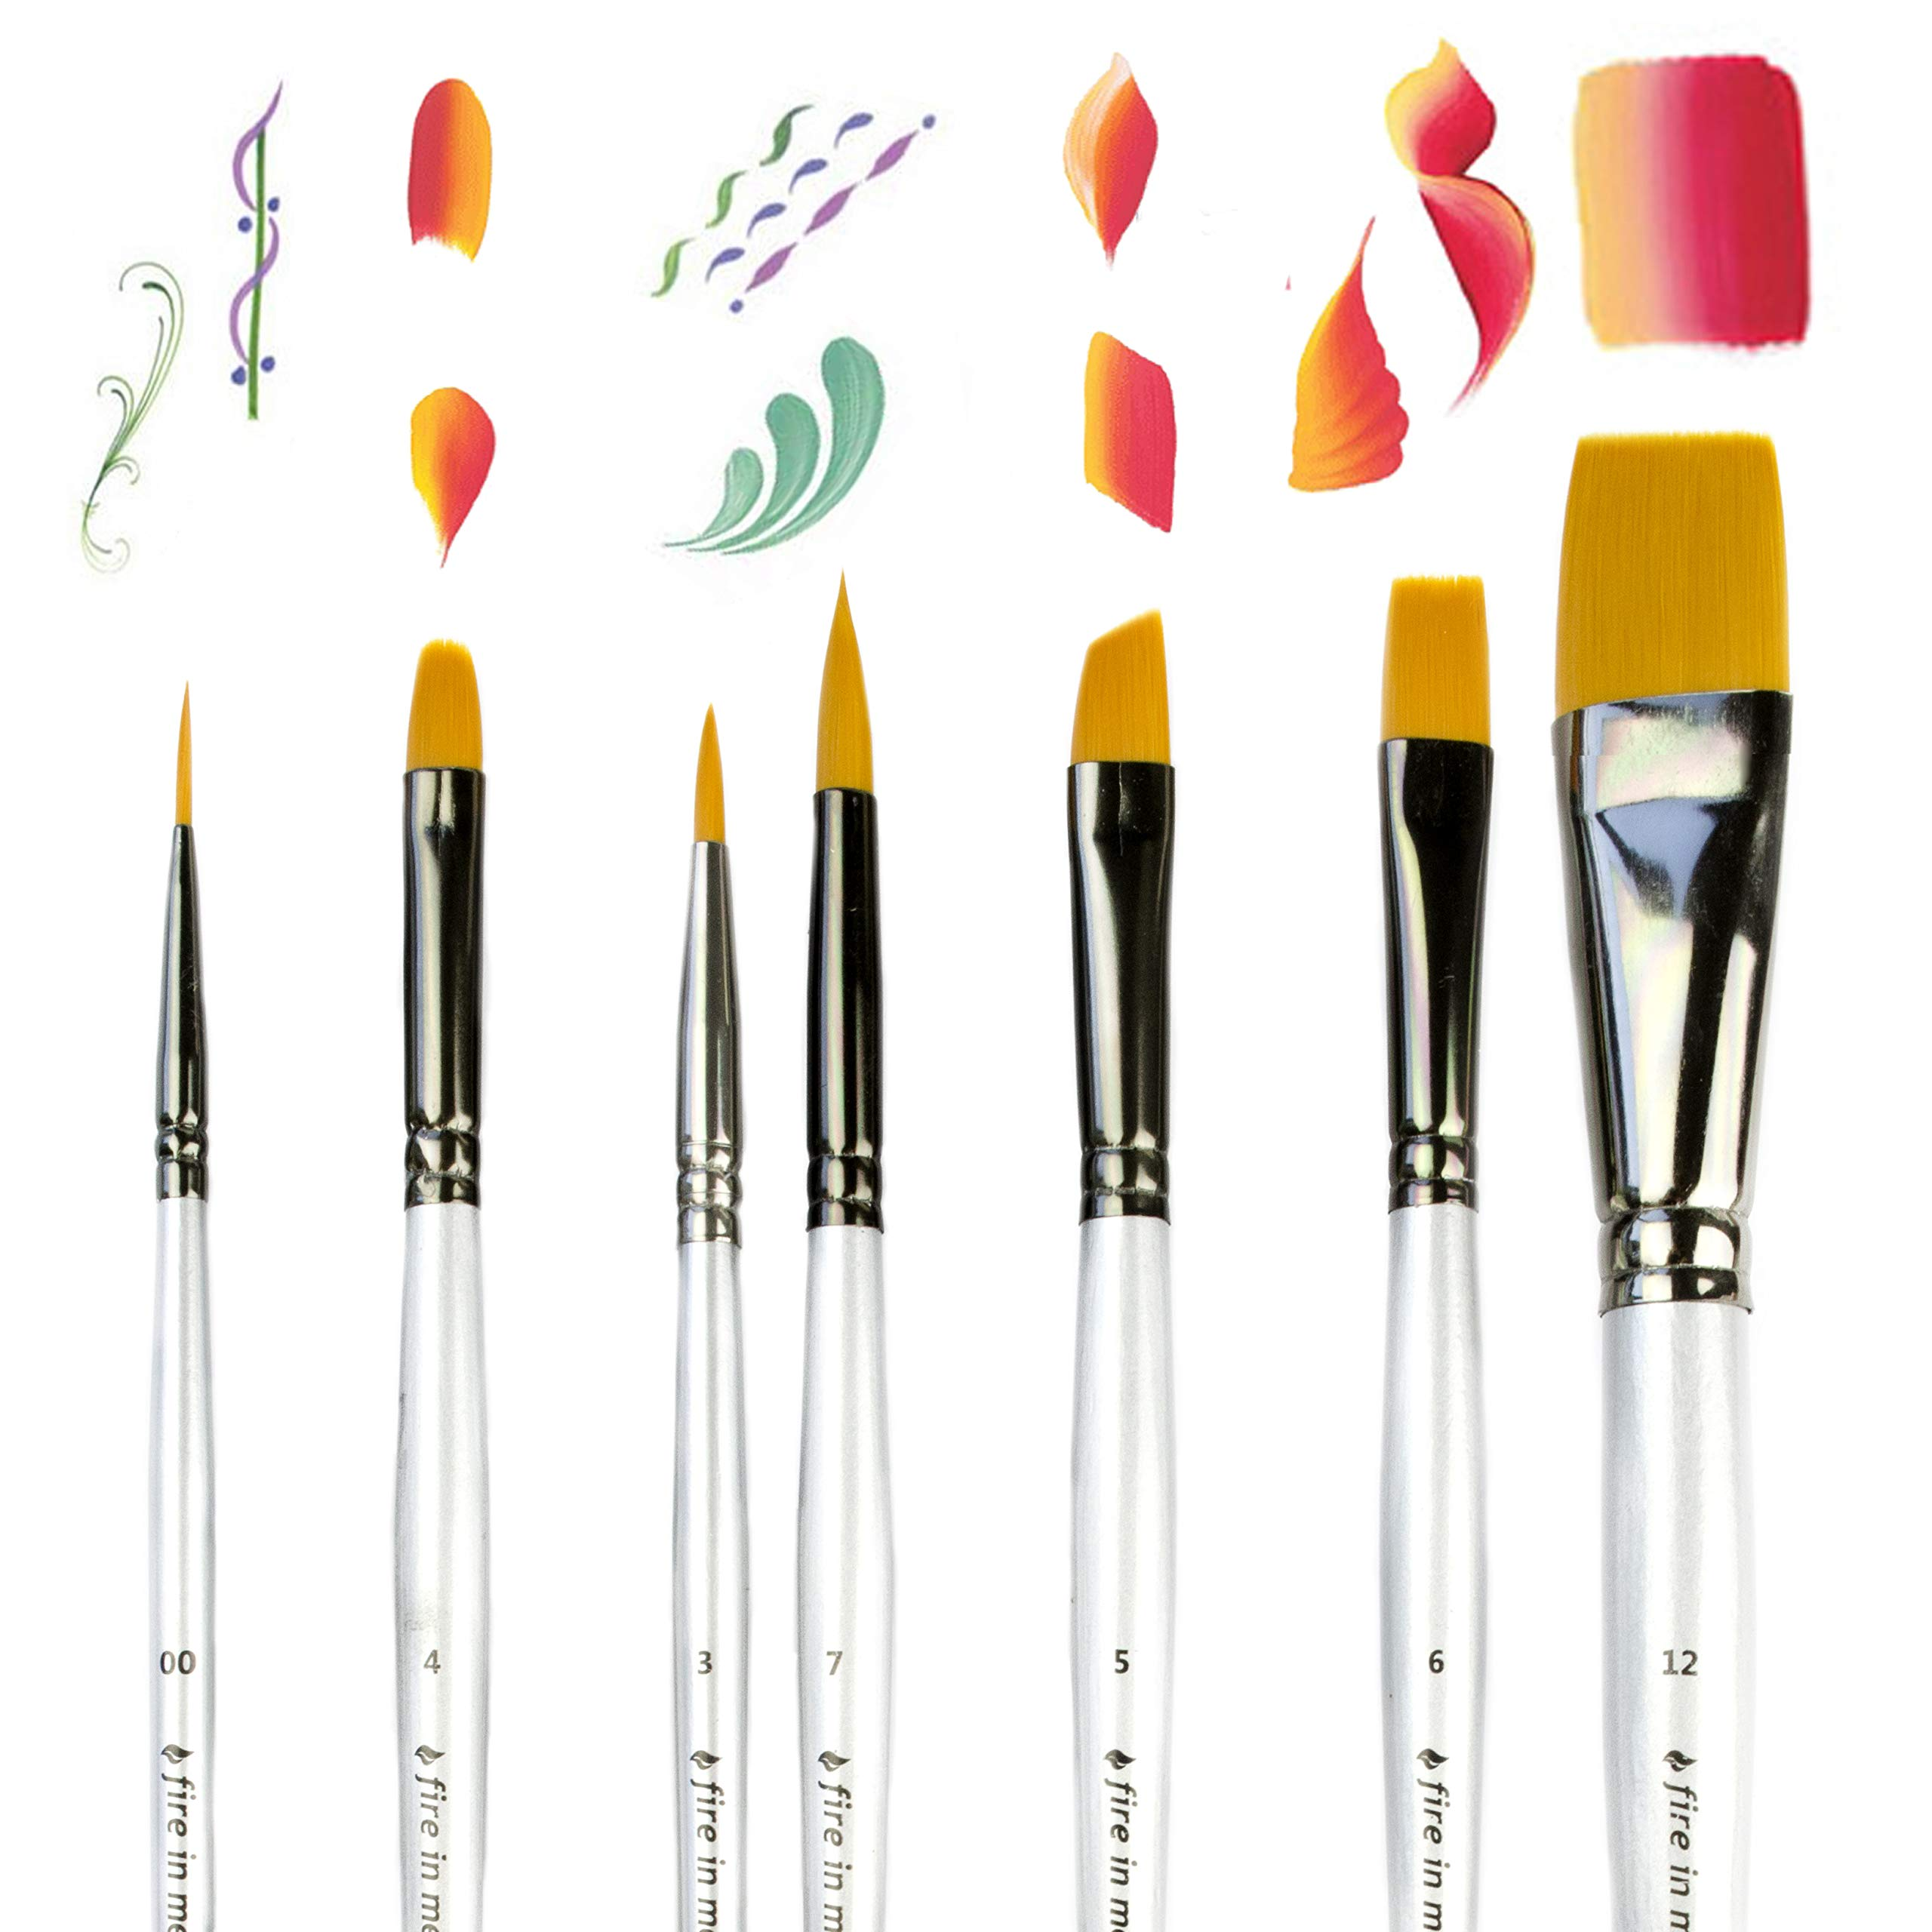 Art Paint Brushes for Acrylic Painting Watercolor Oil Gouache - Body and Face Paint Brushes for Adults Kids. Best Artist Paint Brush Set of 7 pcs, Acrylic Paint Brushes for Painting, Artist Brushes by fire in me